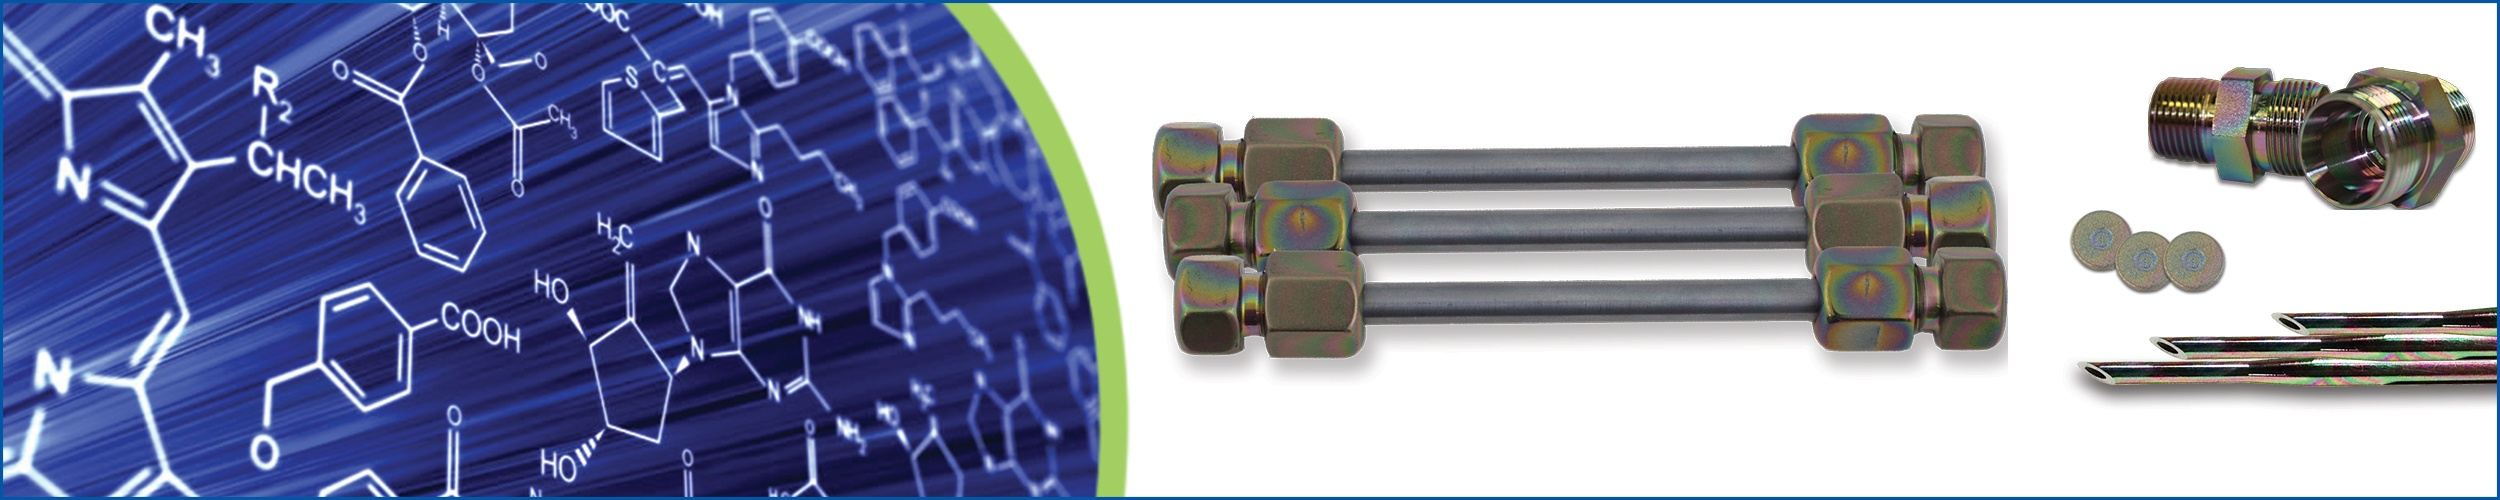 Silicon CVD Coating Material Compatibility Coated Parts